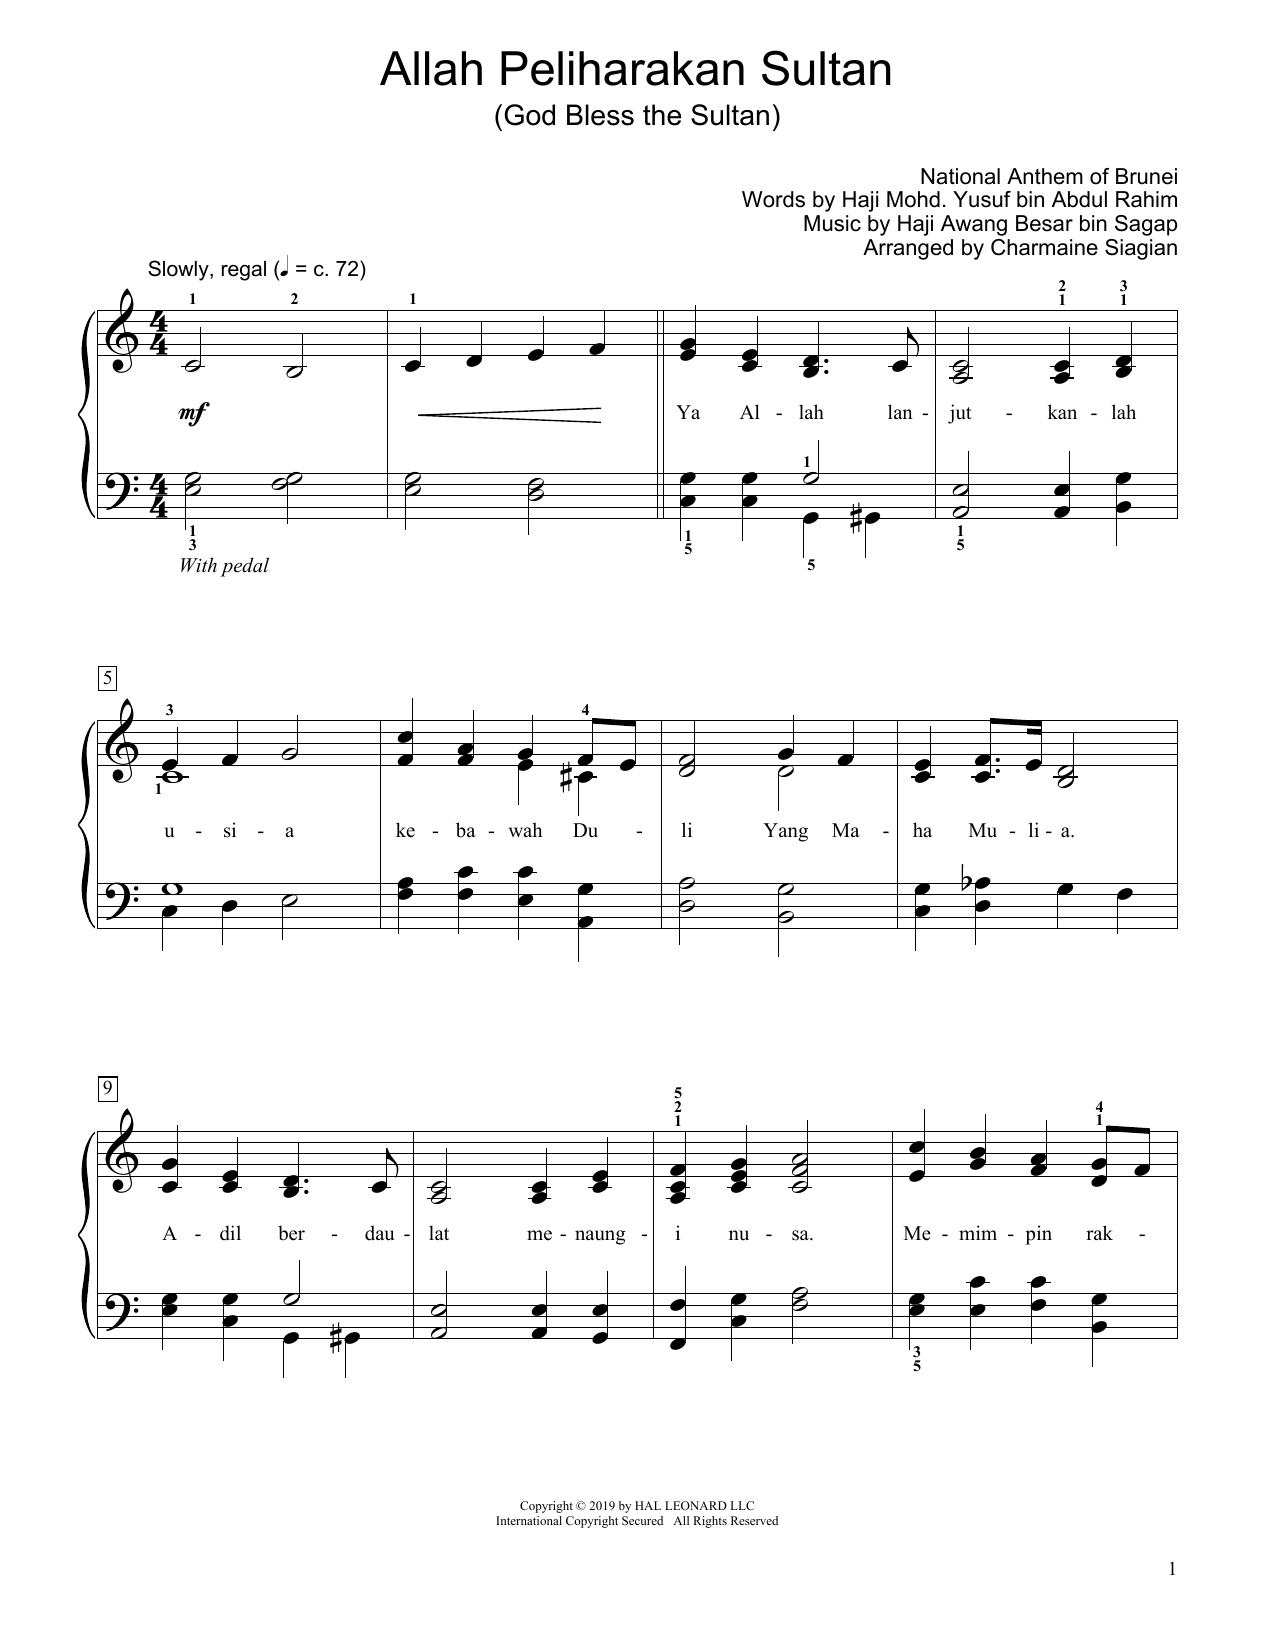 Haji Awang bin Sagap God Bless The Sultan (Allah Peliharakan Sultan) (arr. Charmaine Siagian) sheet music notes and chords. Download Printable PDF.